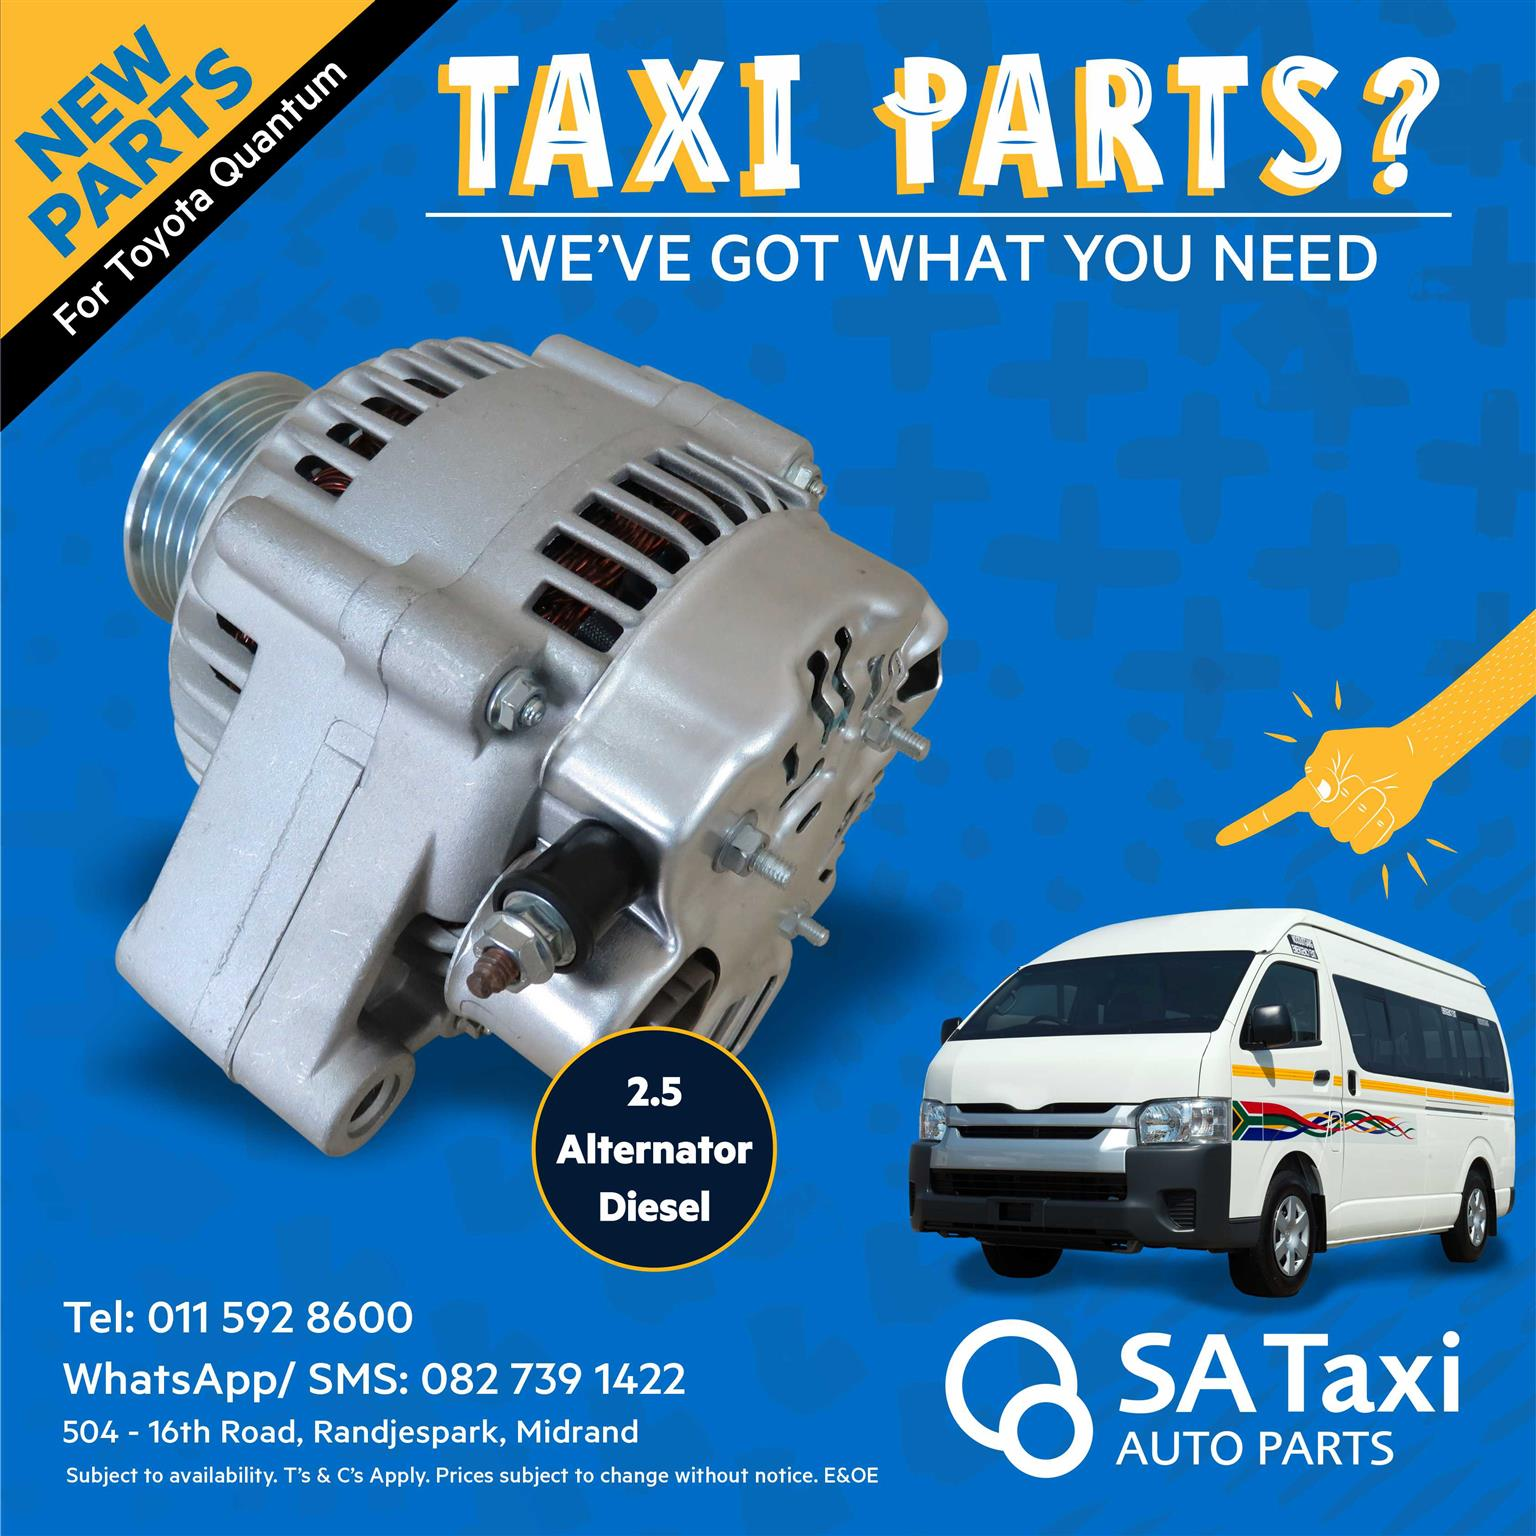 New Alternator 2.5 suitable for Toyota Quantum - SA Taxi Auto Parts quality taxi spares